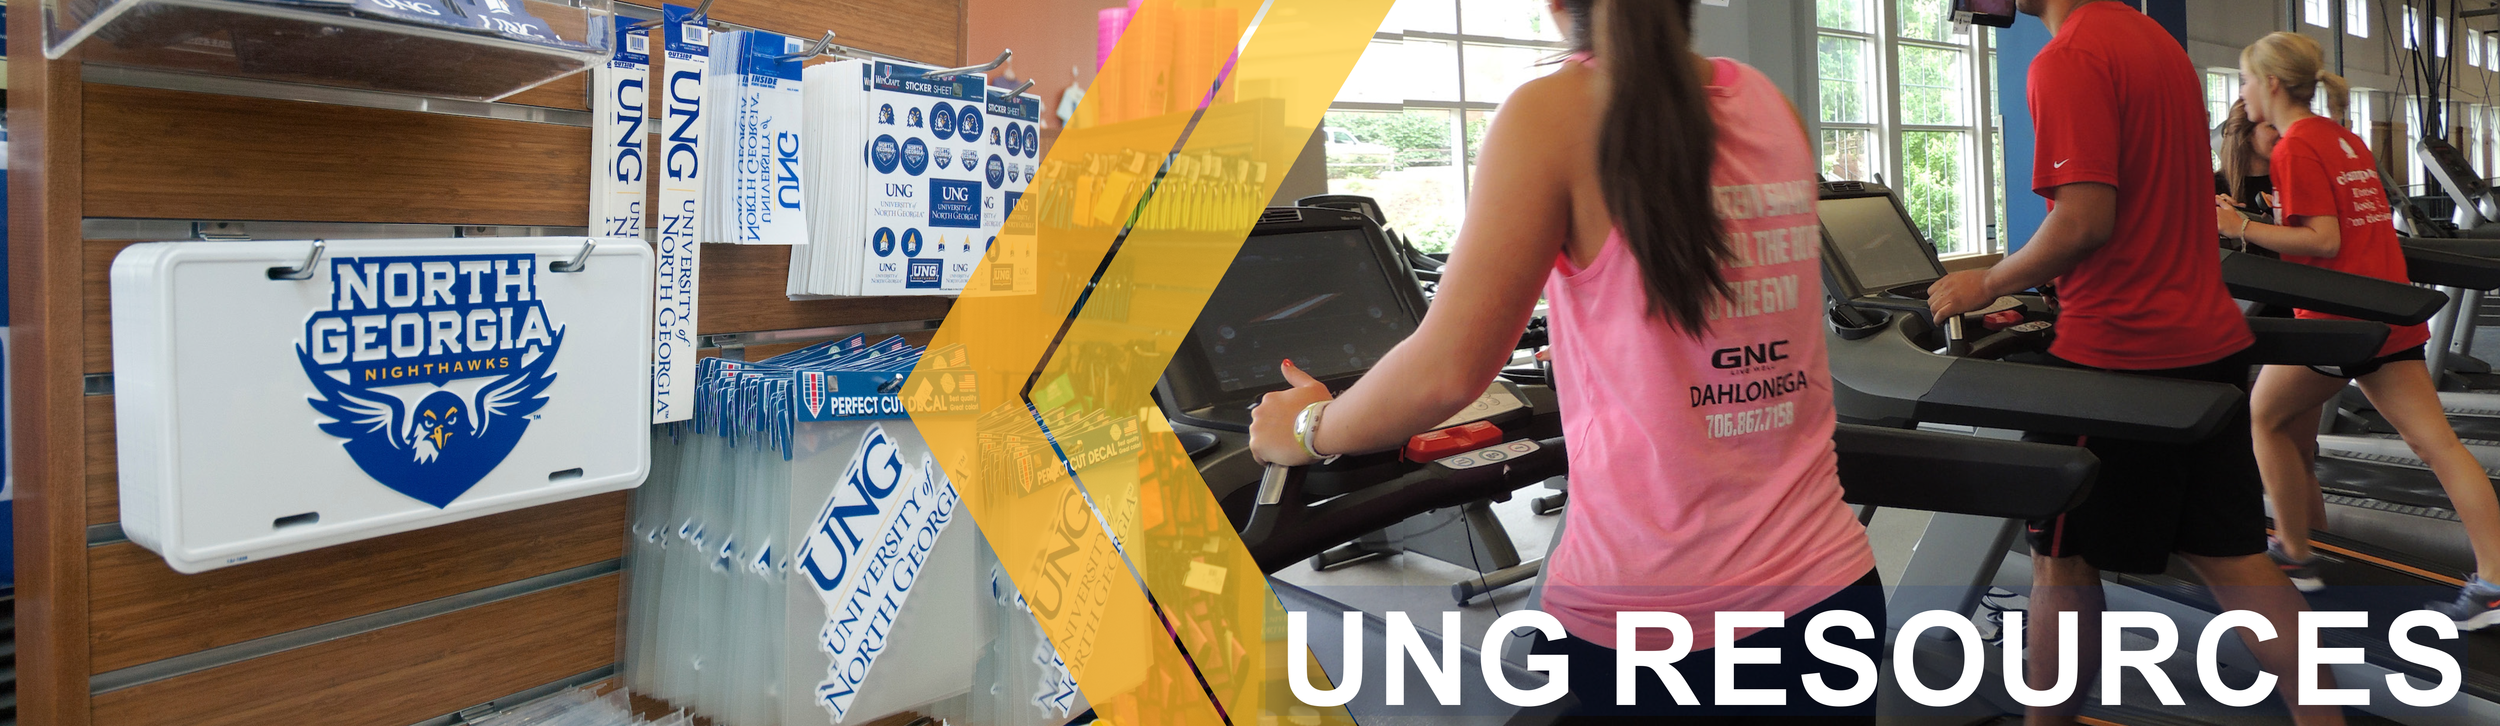 University of North Georgia Resources page banner: Image shows a wall of University of North Georgia car decals, stickers, and tags. The second image shows people using the gym located at the University.